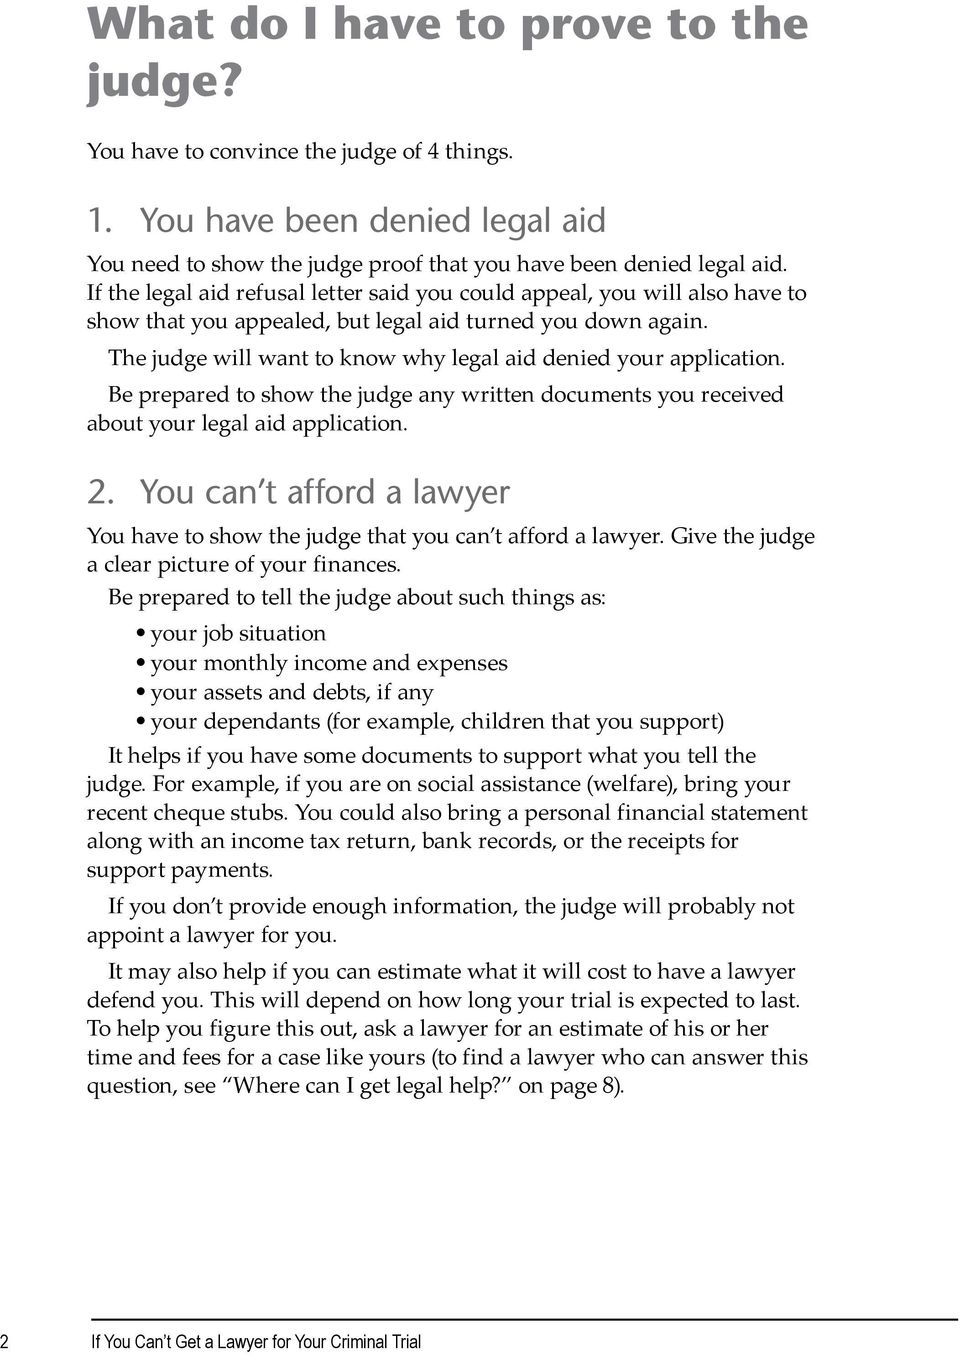 The judge will want to know why legal aid denied your application. Be prepared to show the judge any written documents you received about your legal aid application. 2.